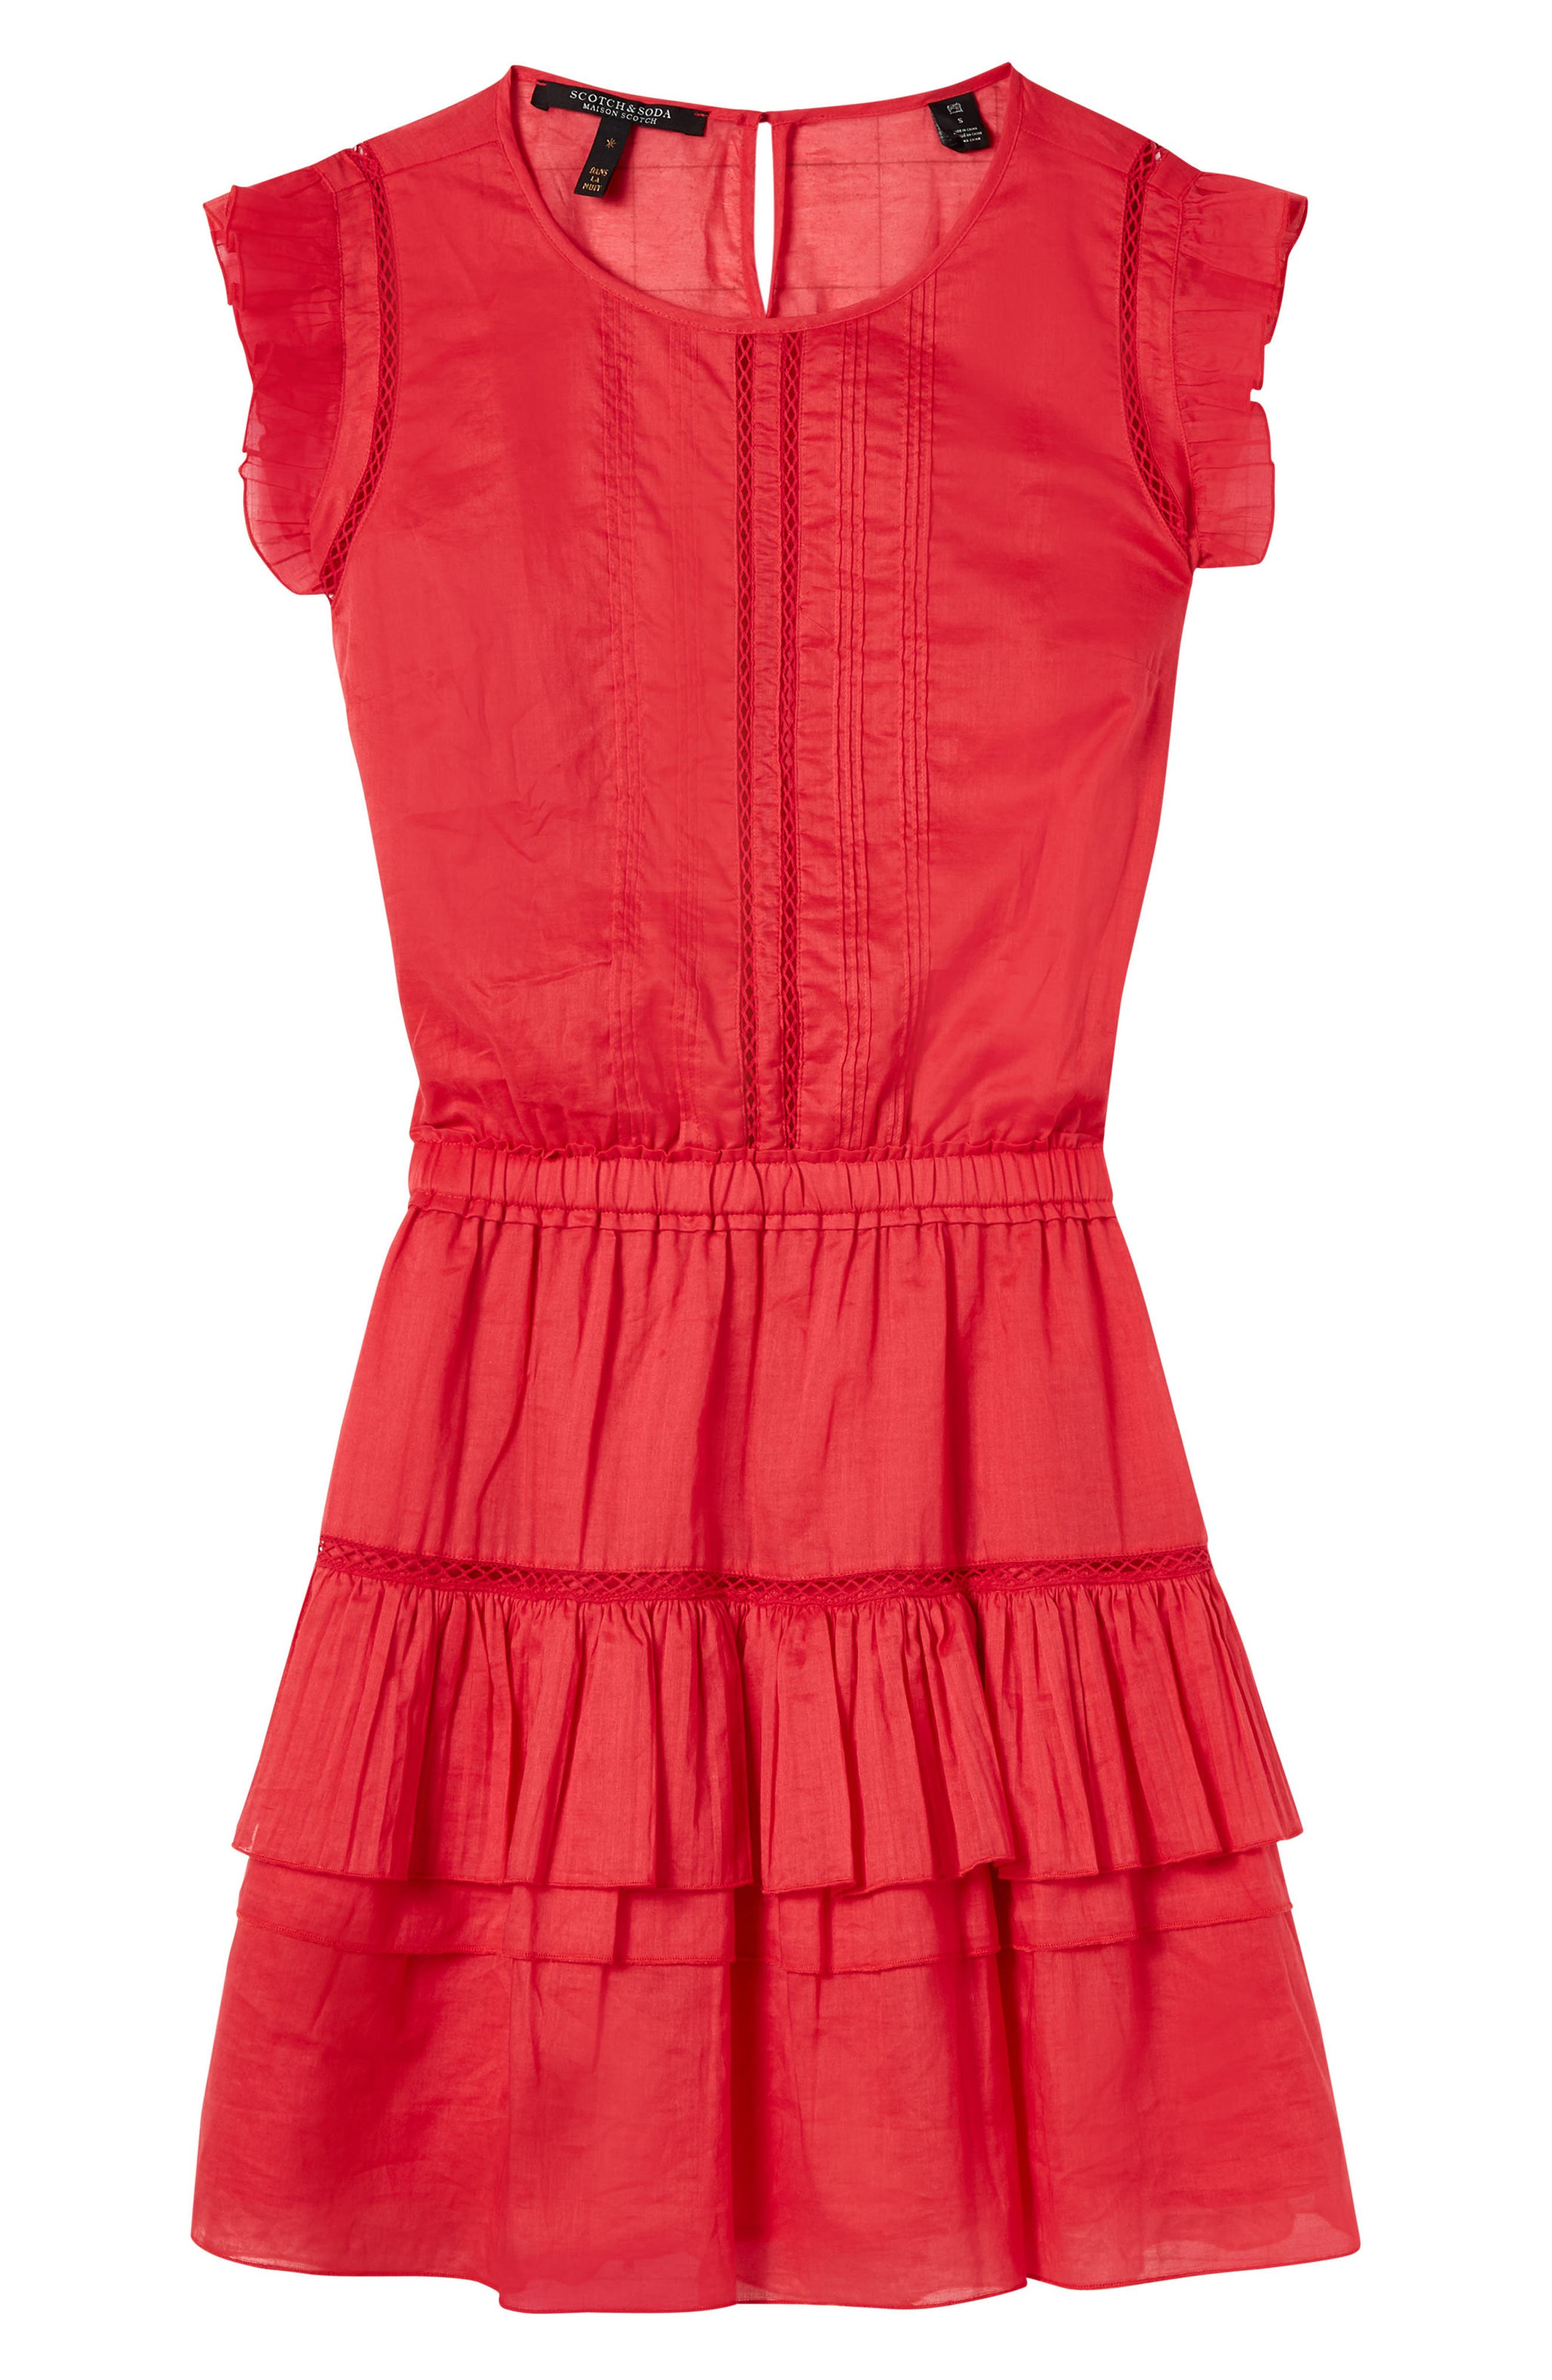 SCOTCH & SODA,                             Tiered Sleeveless Dress,                             Alternate thumbnail 5, color,                             600